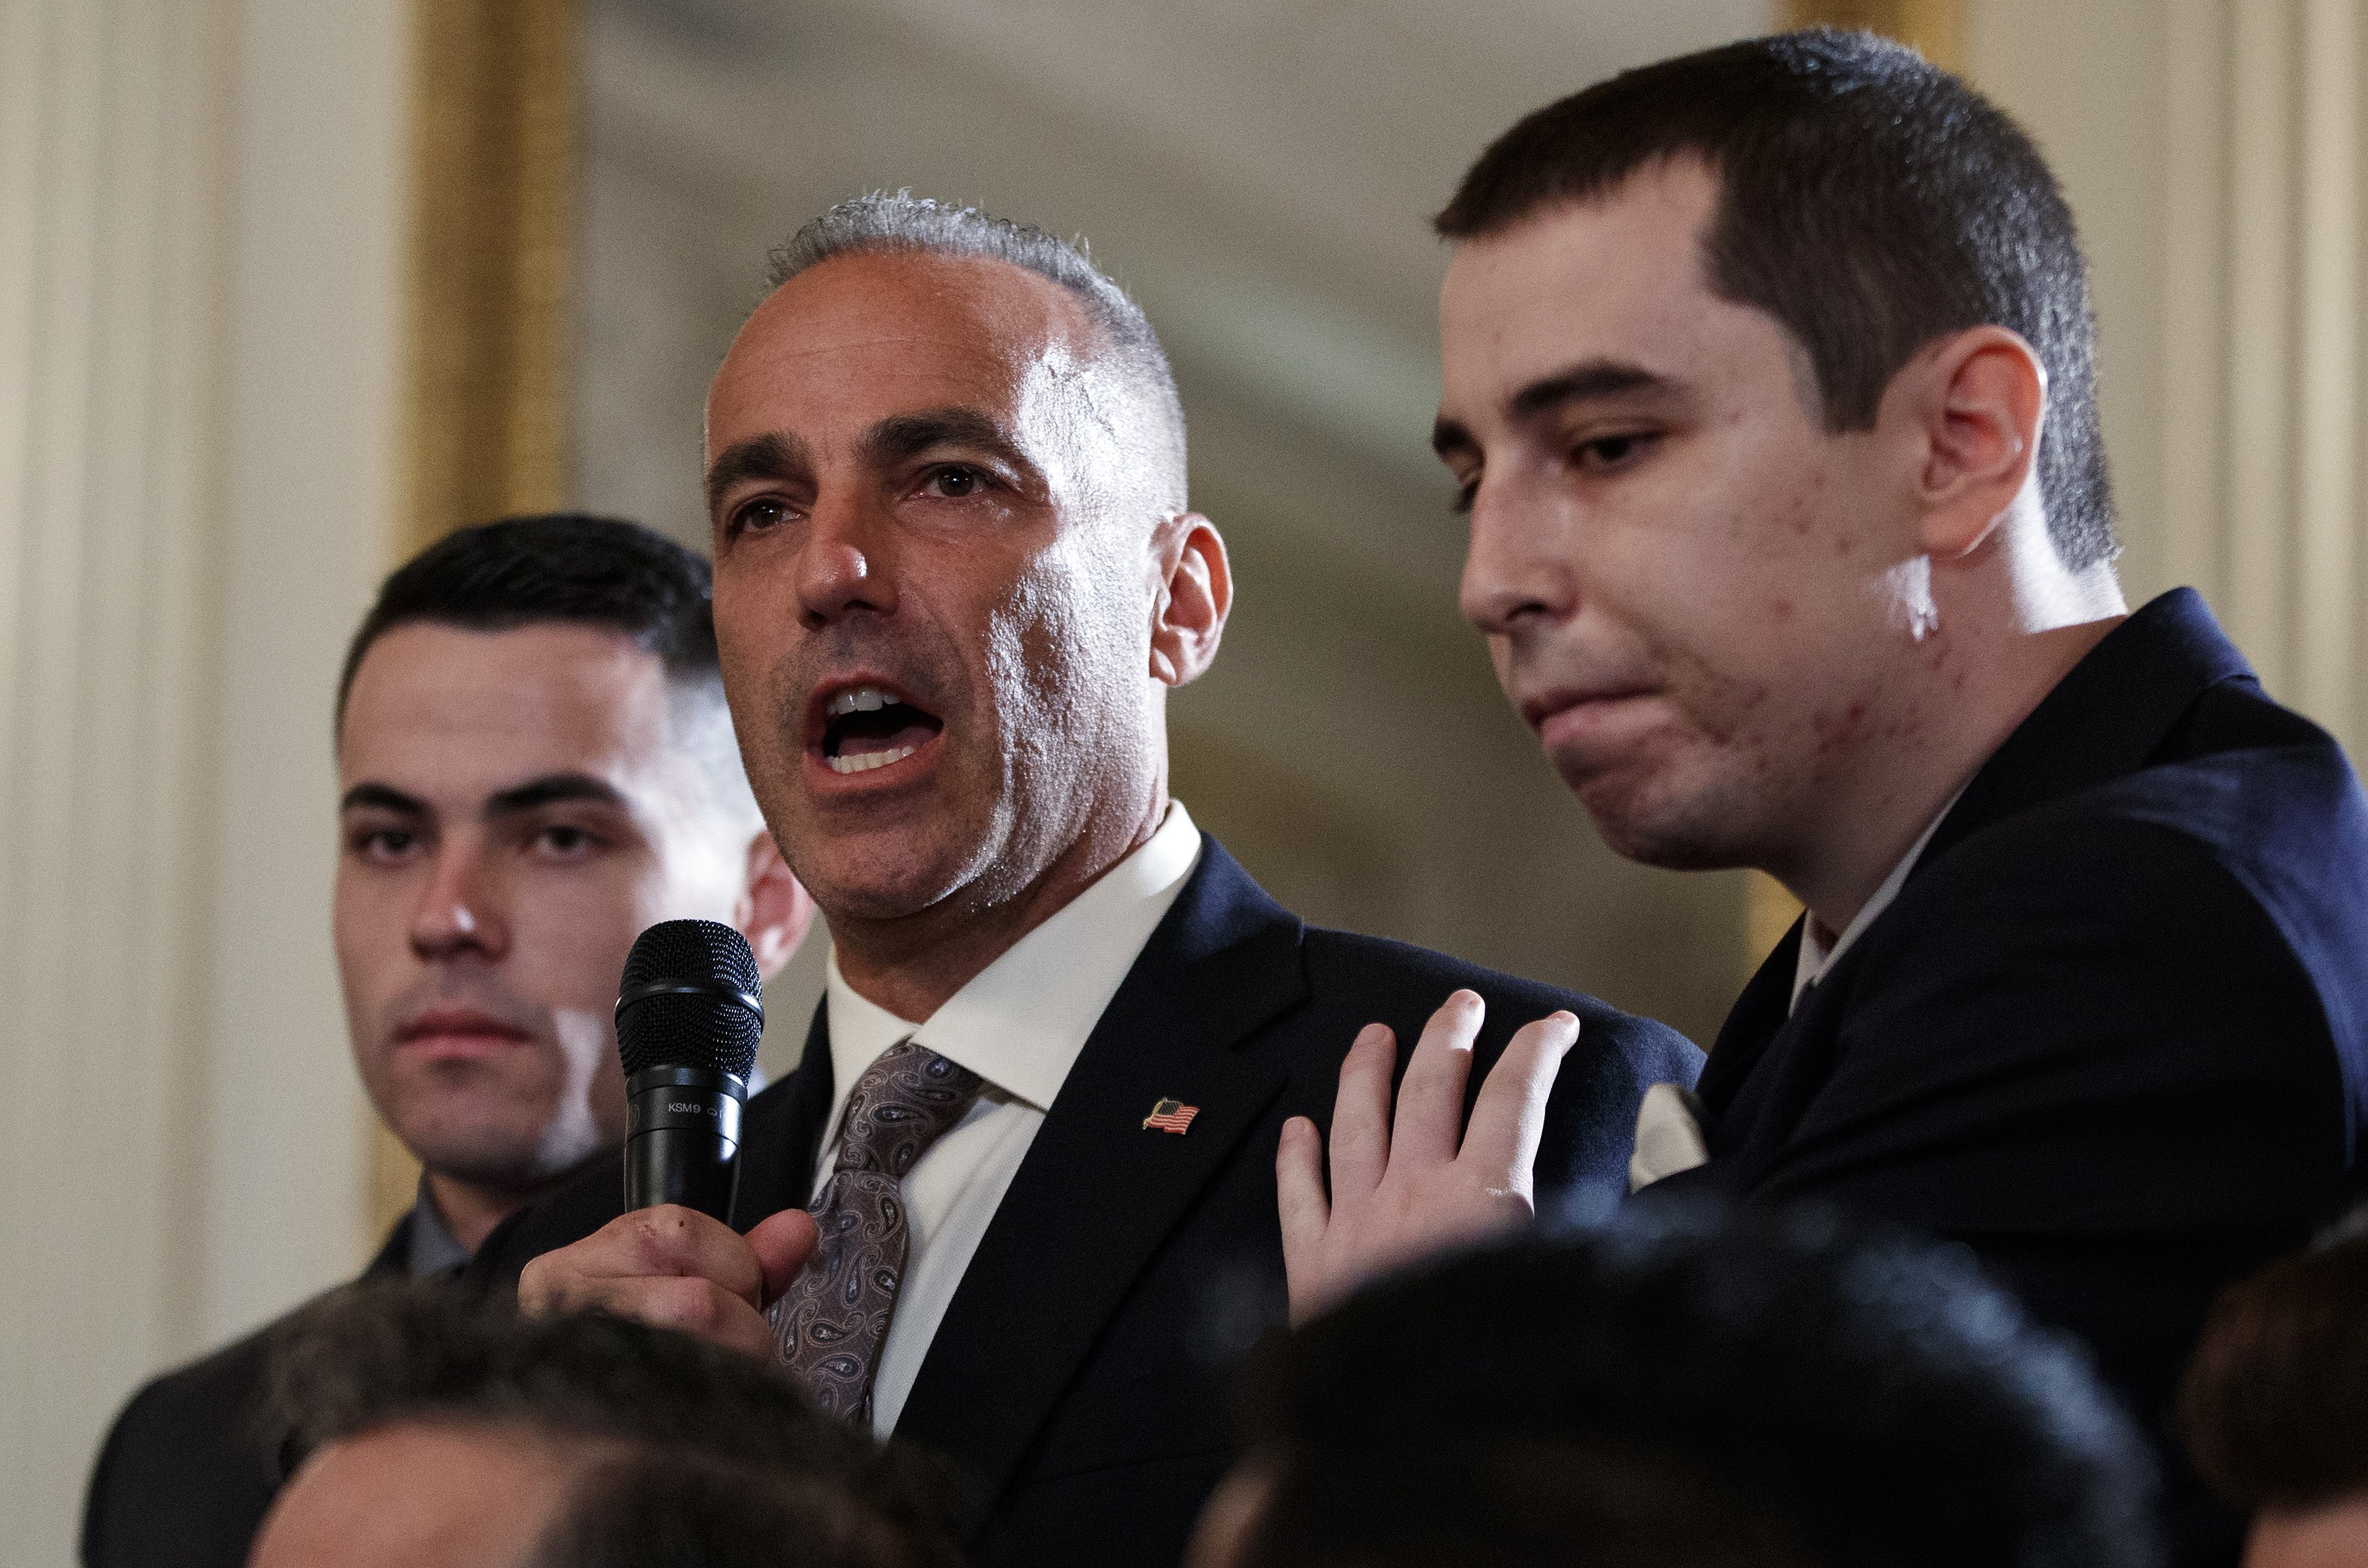 Father of Slain Parkland Student Explodes on Deputy After Release of Video Hes a Coward VIDEO